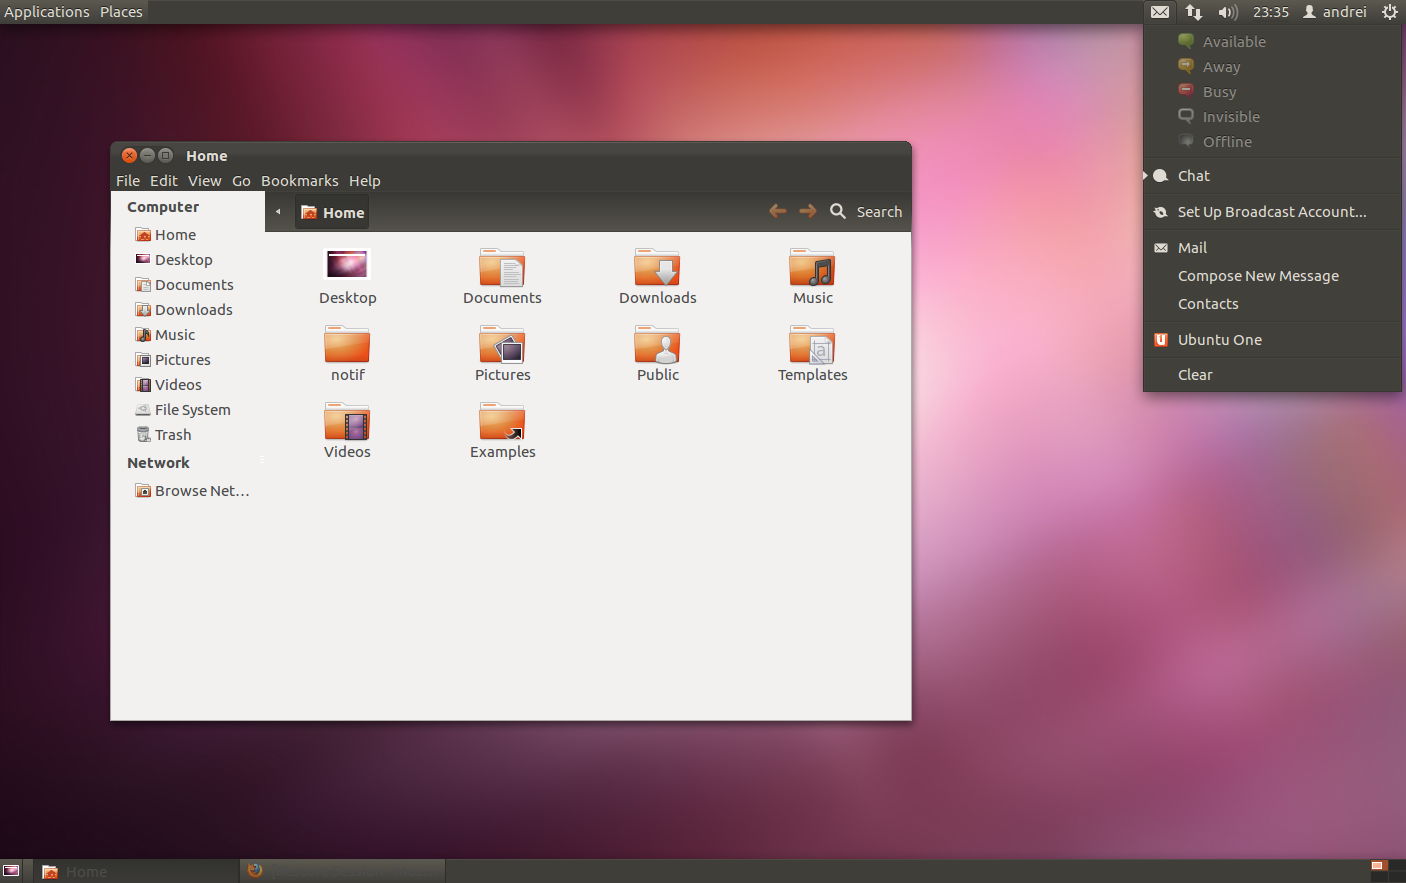 [00:00] <sepero> This ubuntu image only needs 6 votes and it